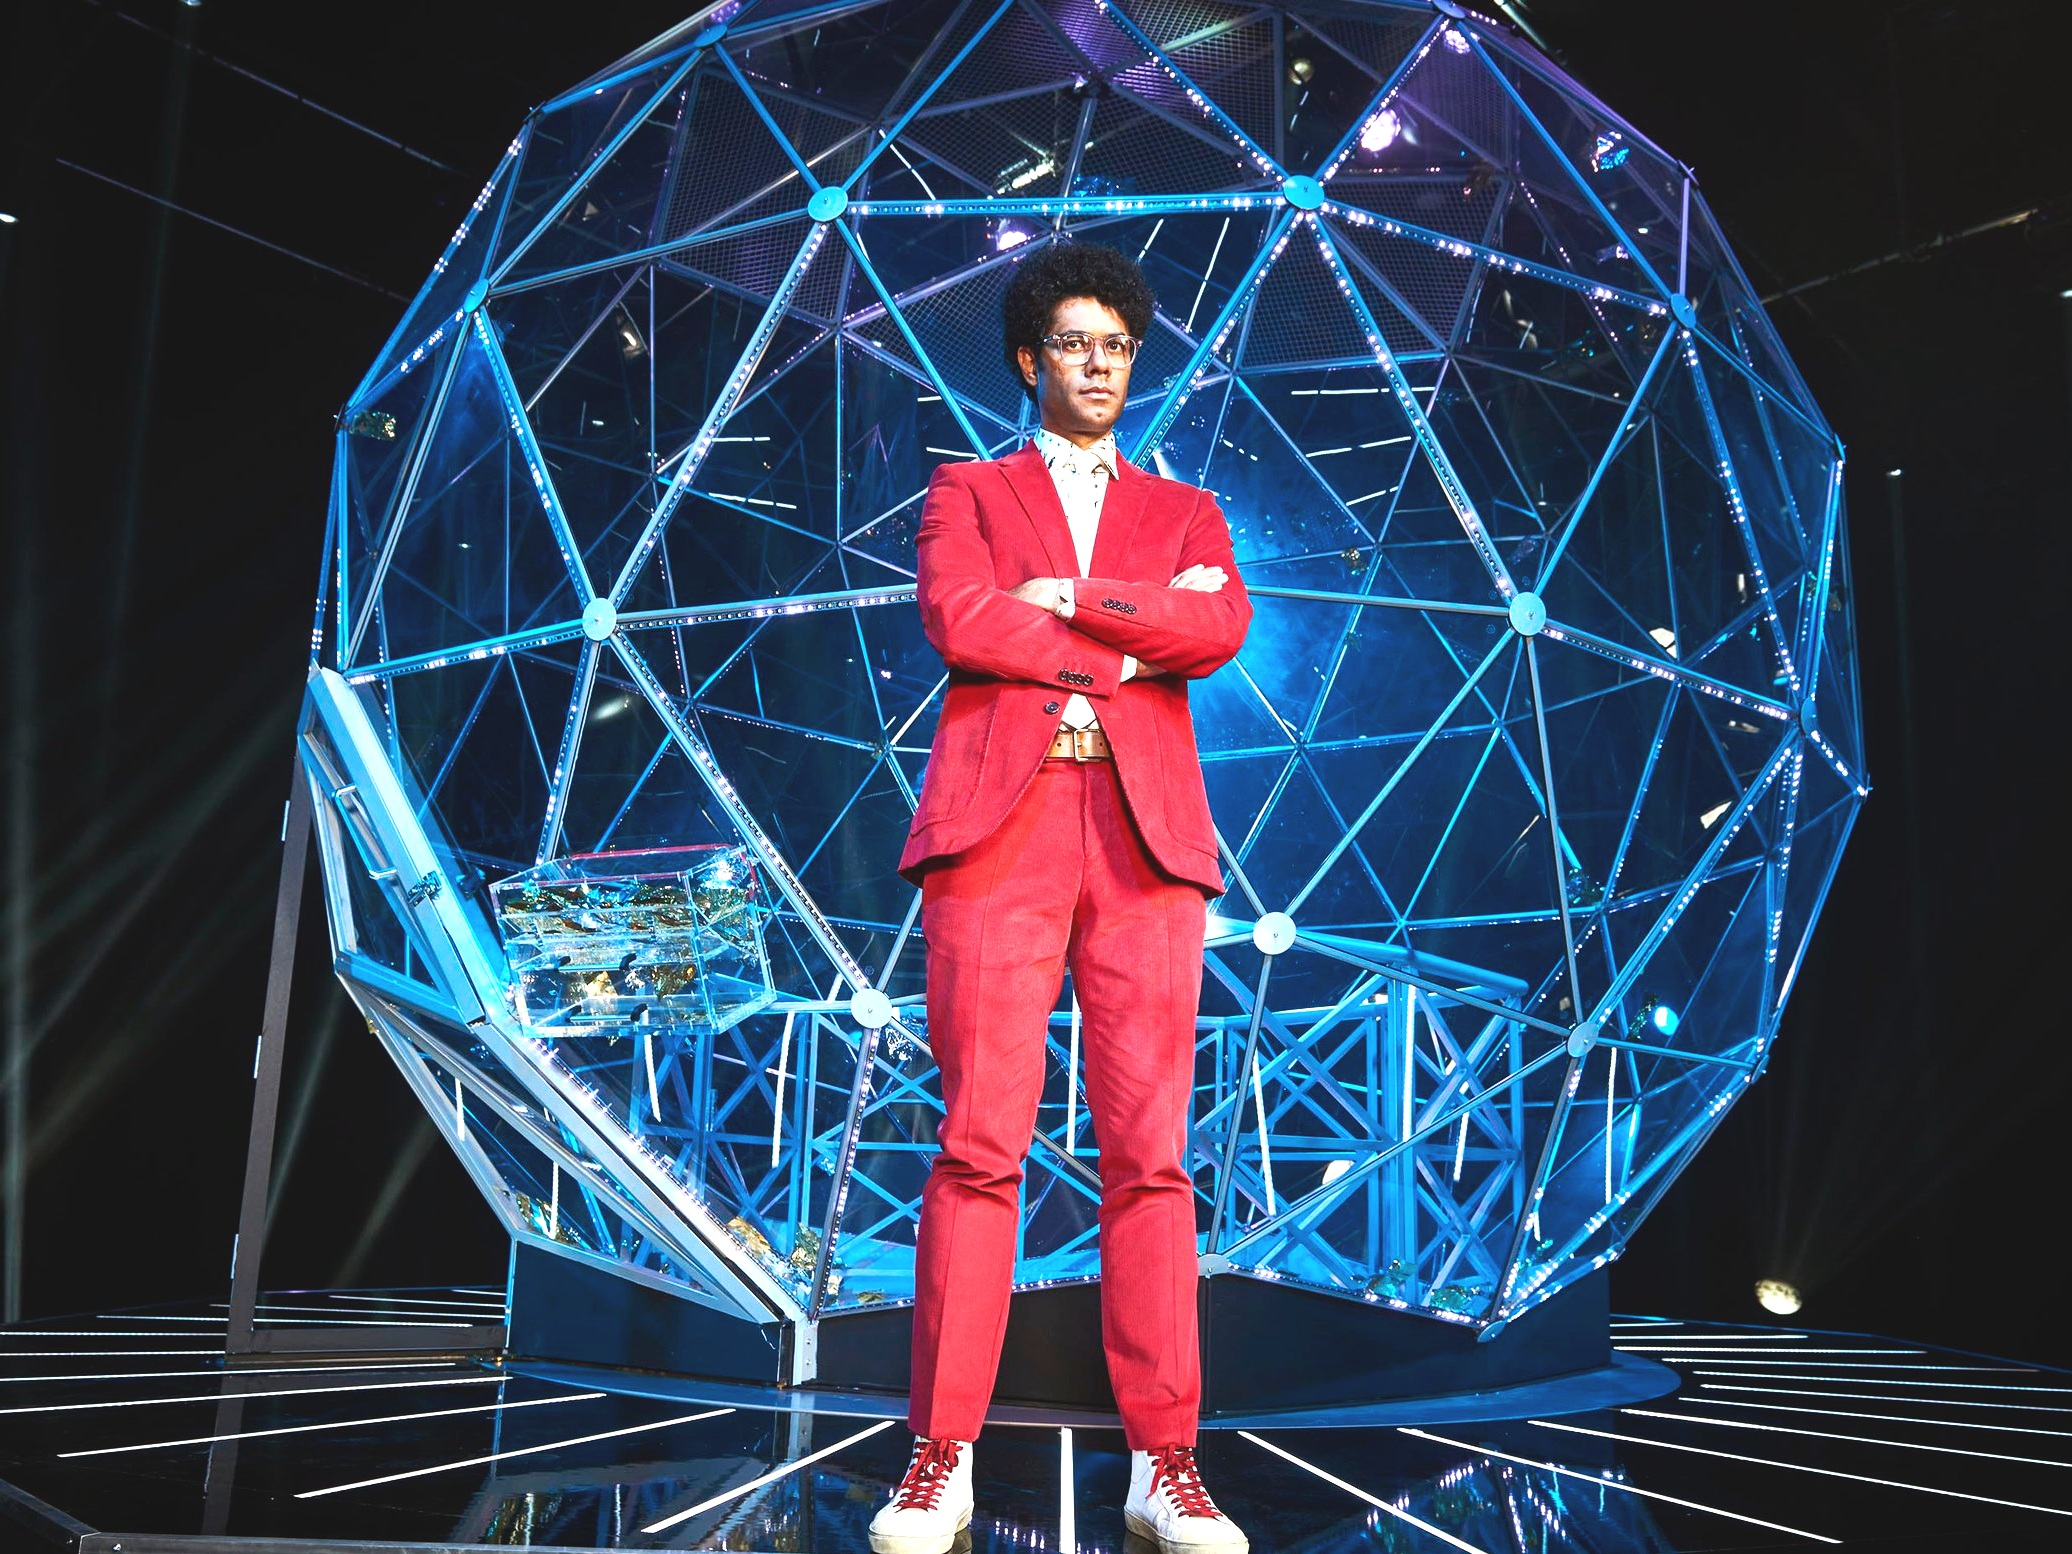 CRYSTAL MAZE   LED installation and gameplay technology / set design: James Dillon, lighting design: Gurdip Mahal